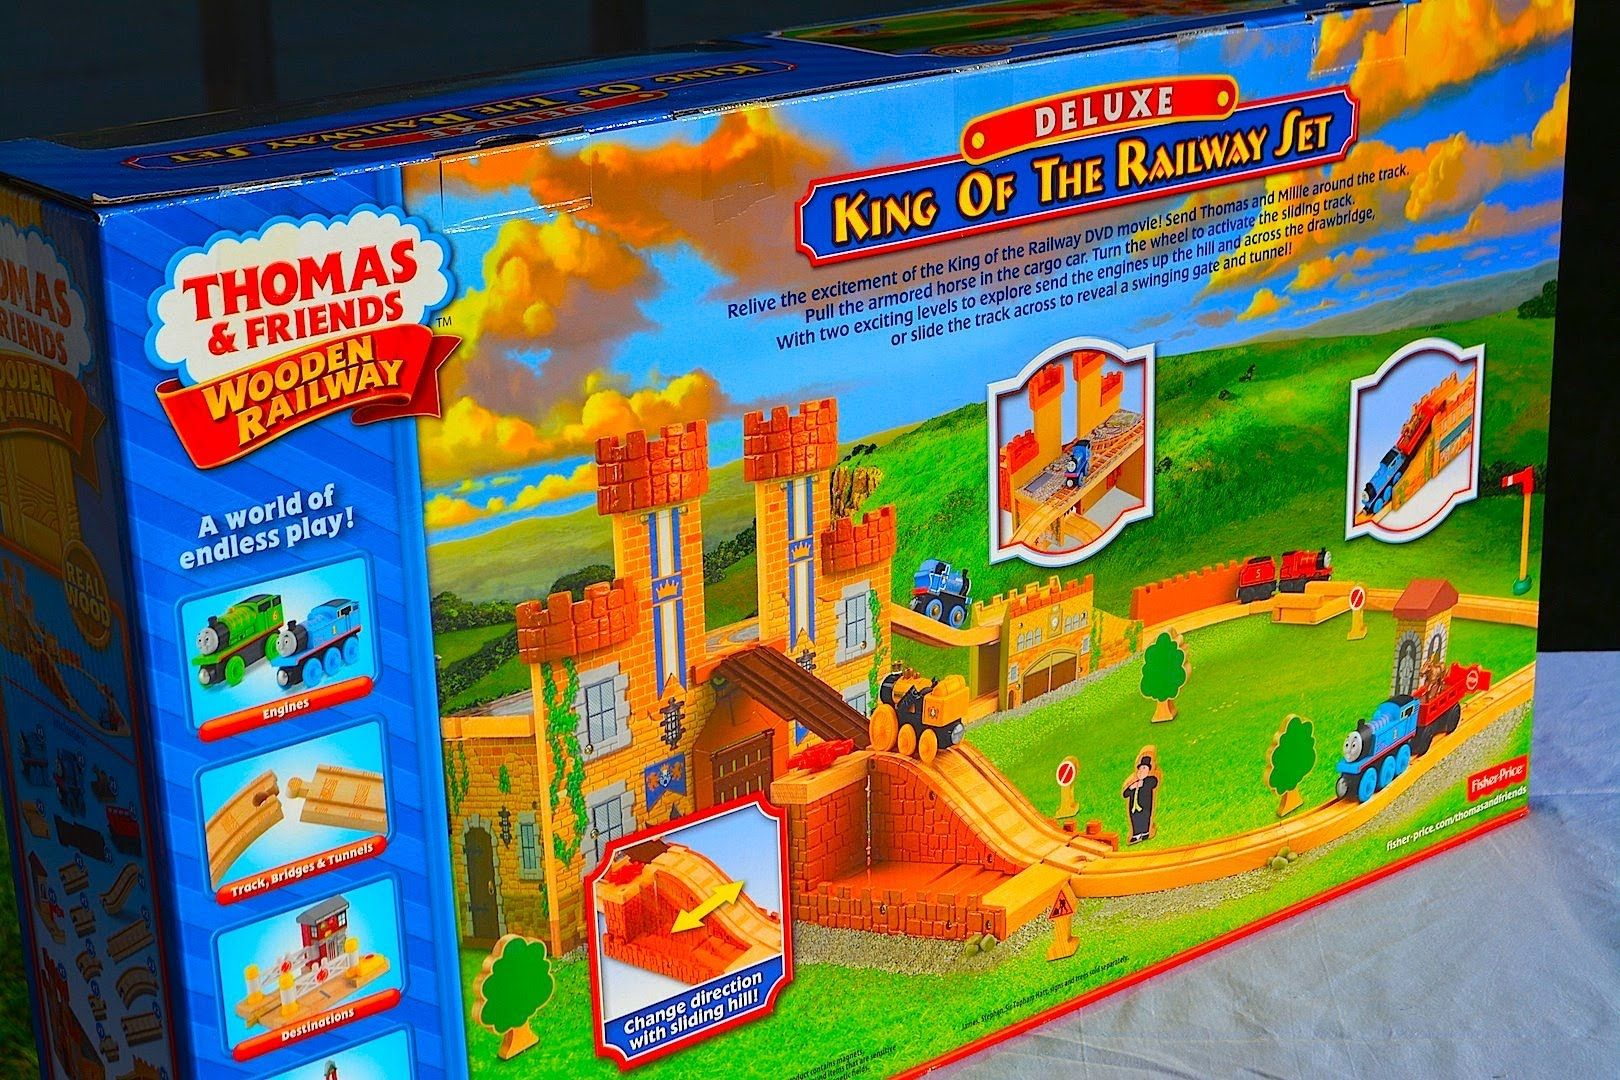 A Quick Review Of The Thomas Friends Wooden Railway King Of The